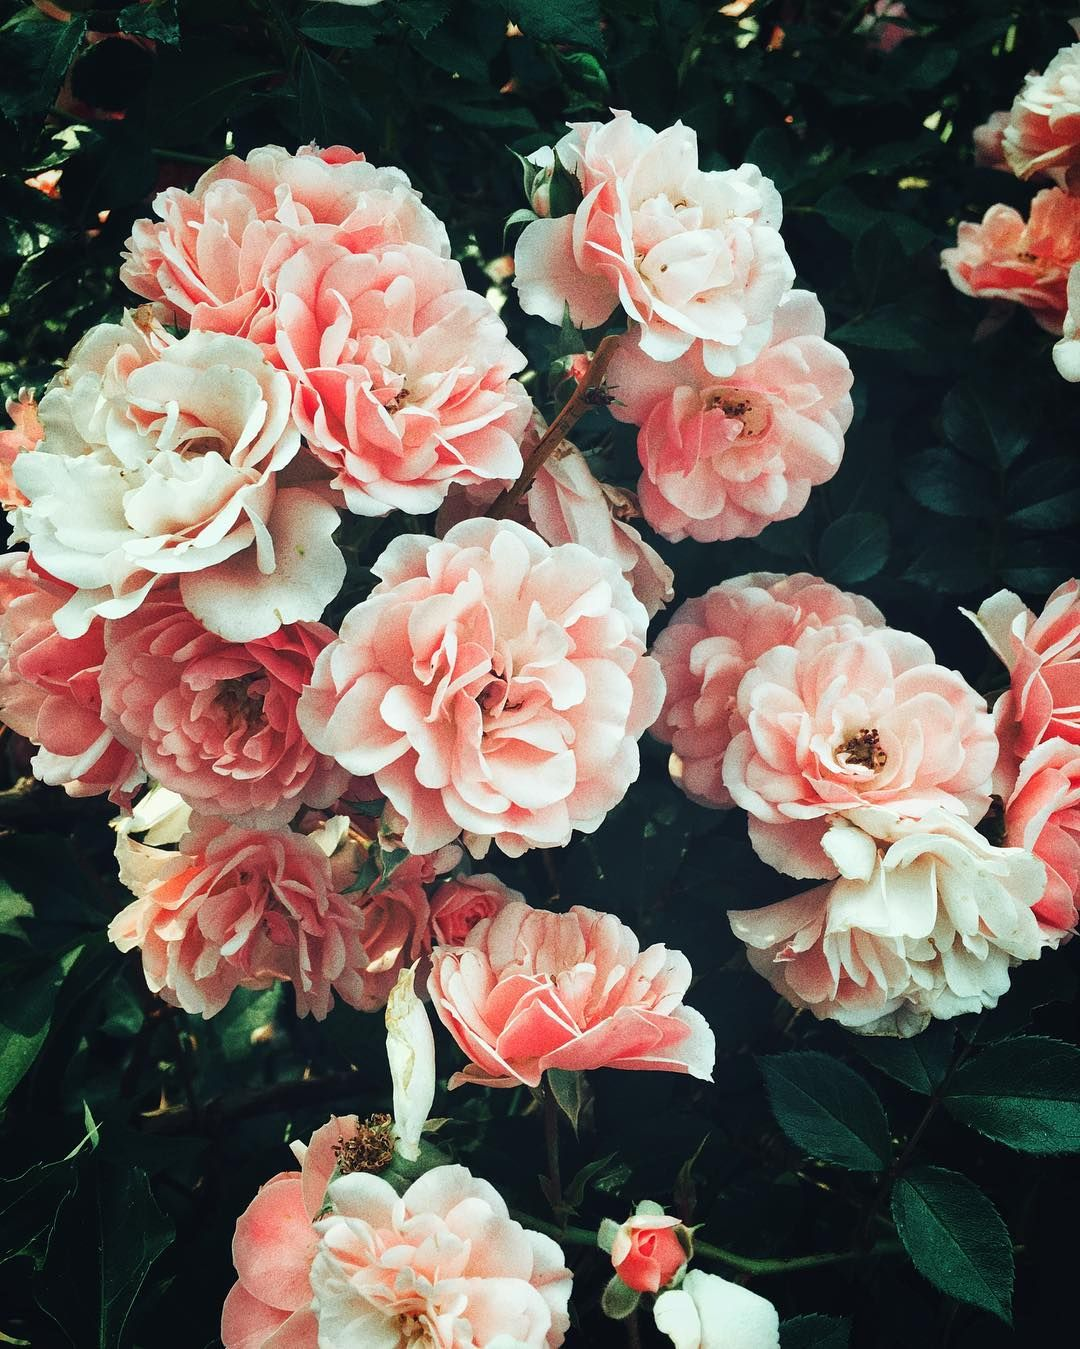 What love means flowers and plants beautiful words about love and life from amy krouse rosenthal who died this week izmirmasajfo